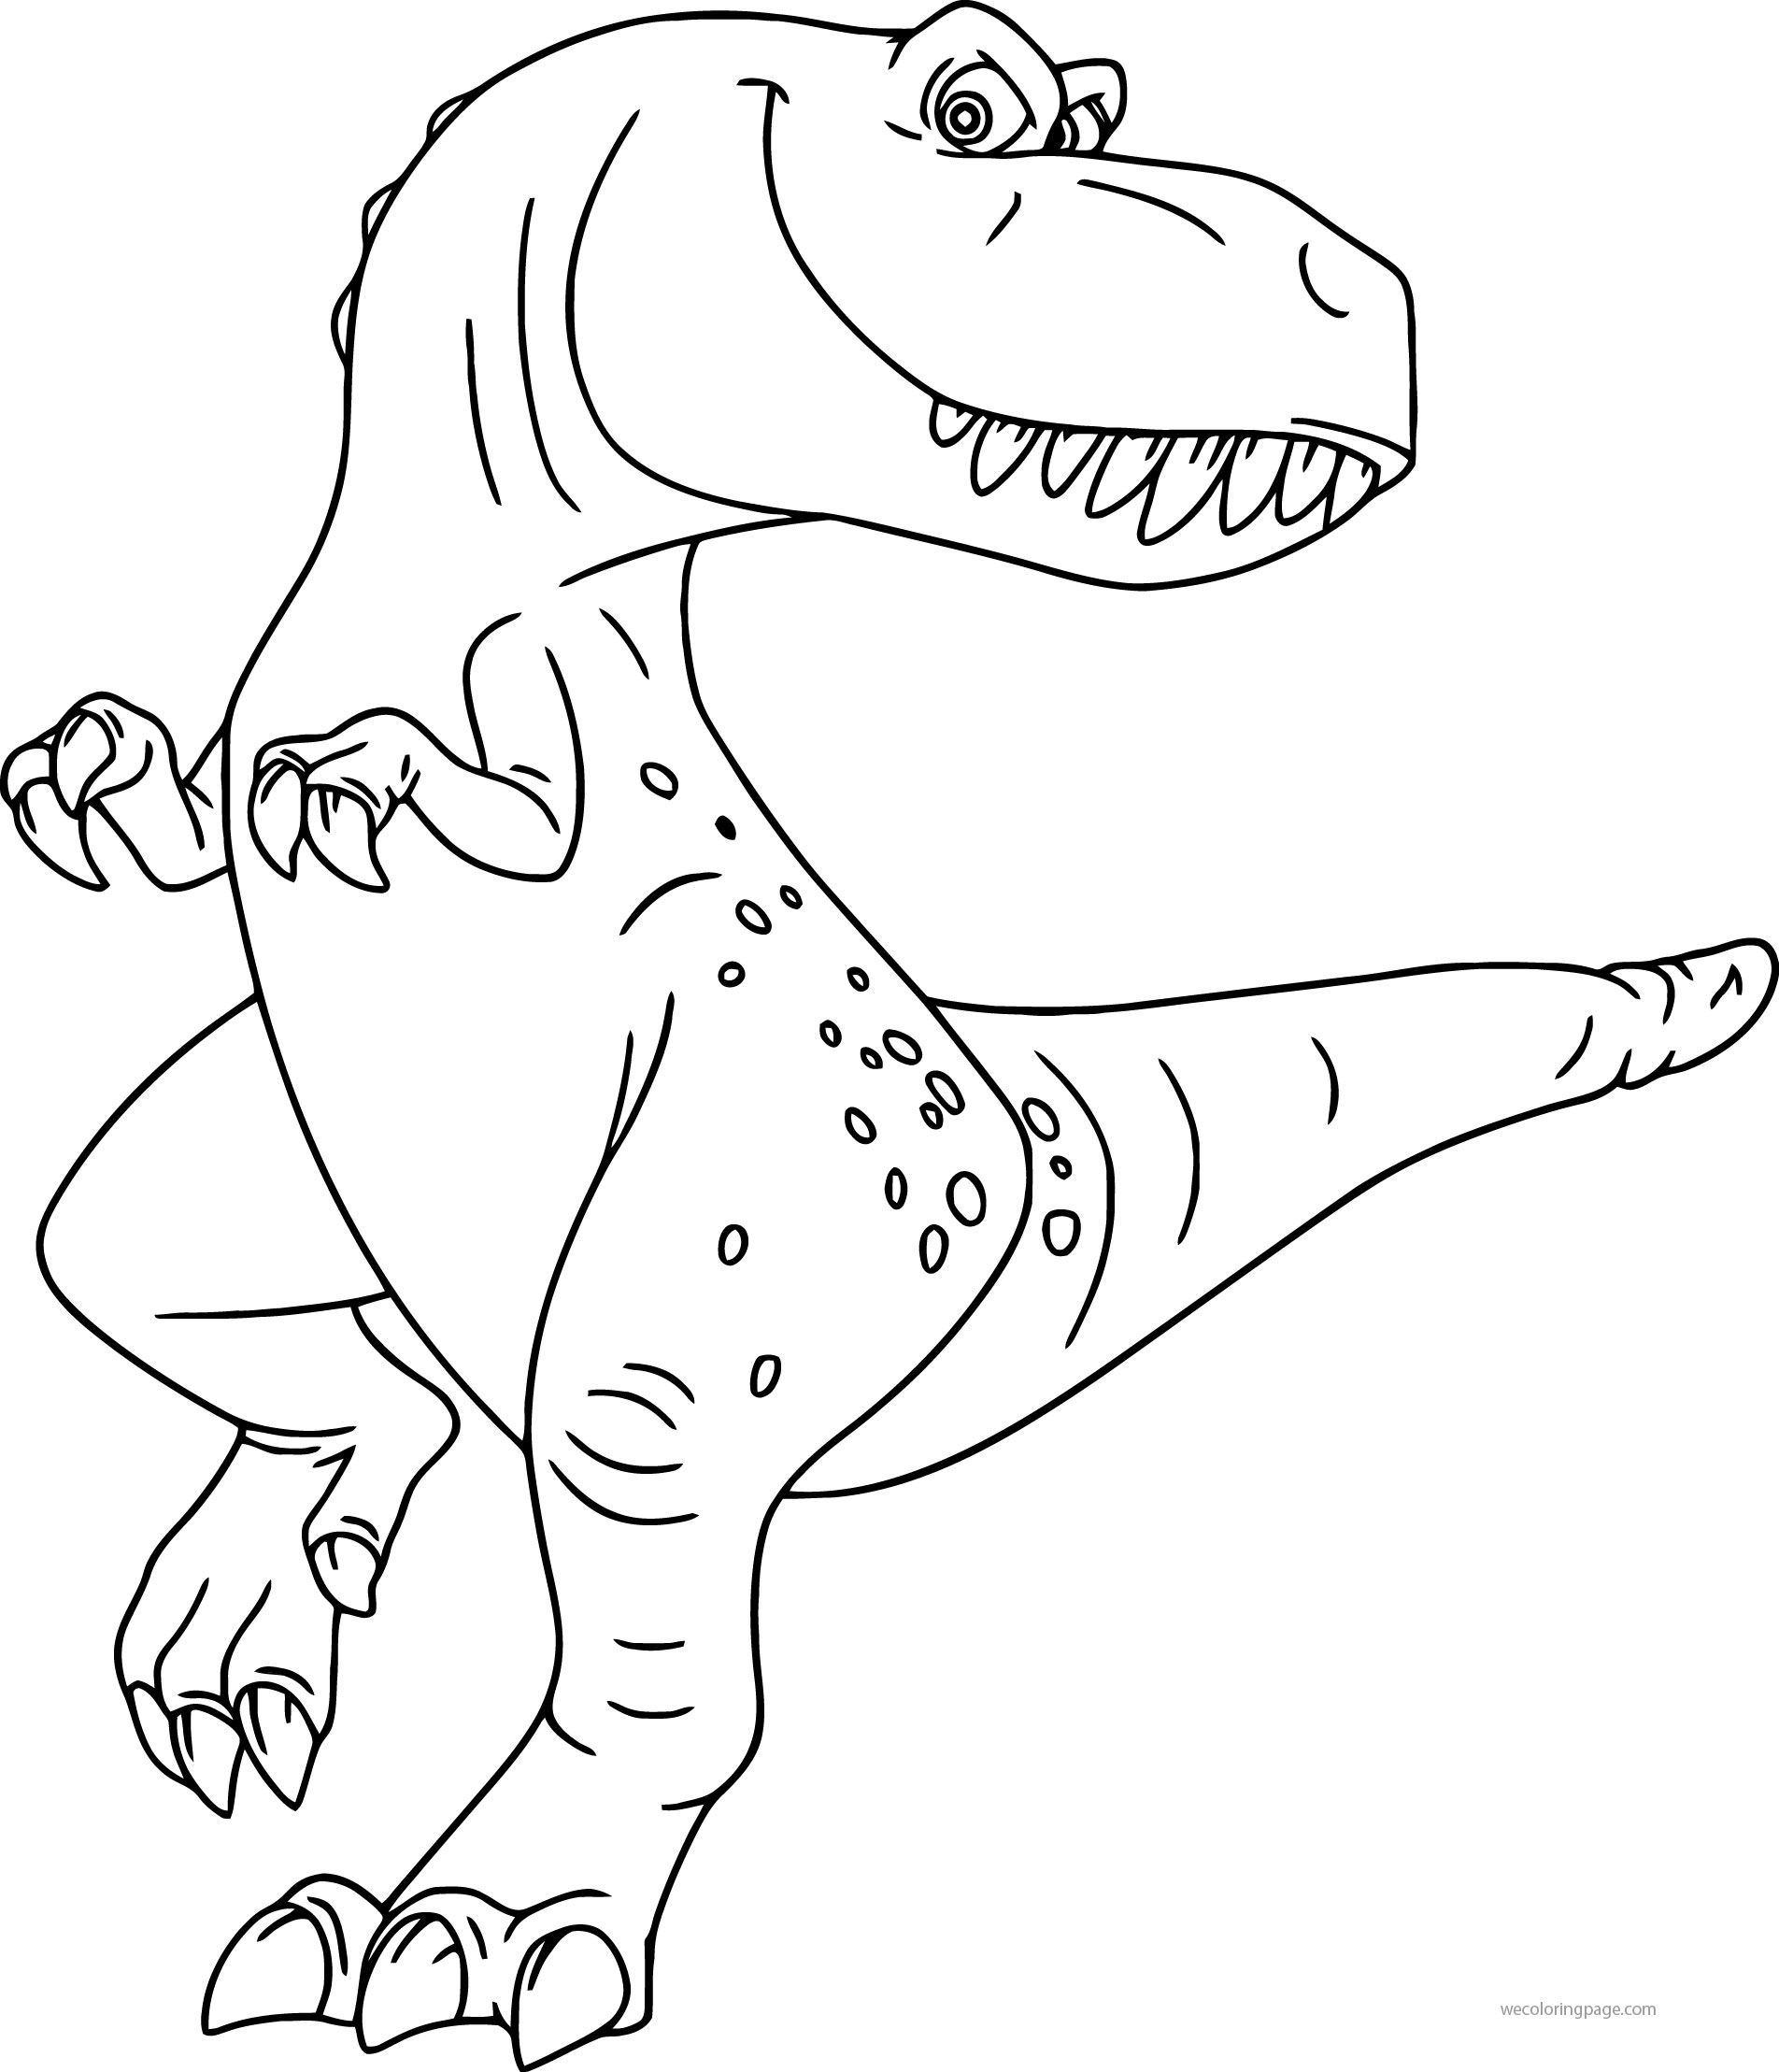 disney dinosaur coloring pages - photo#23